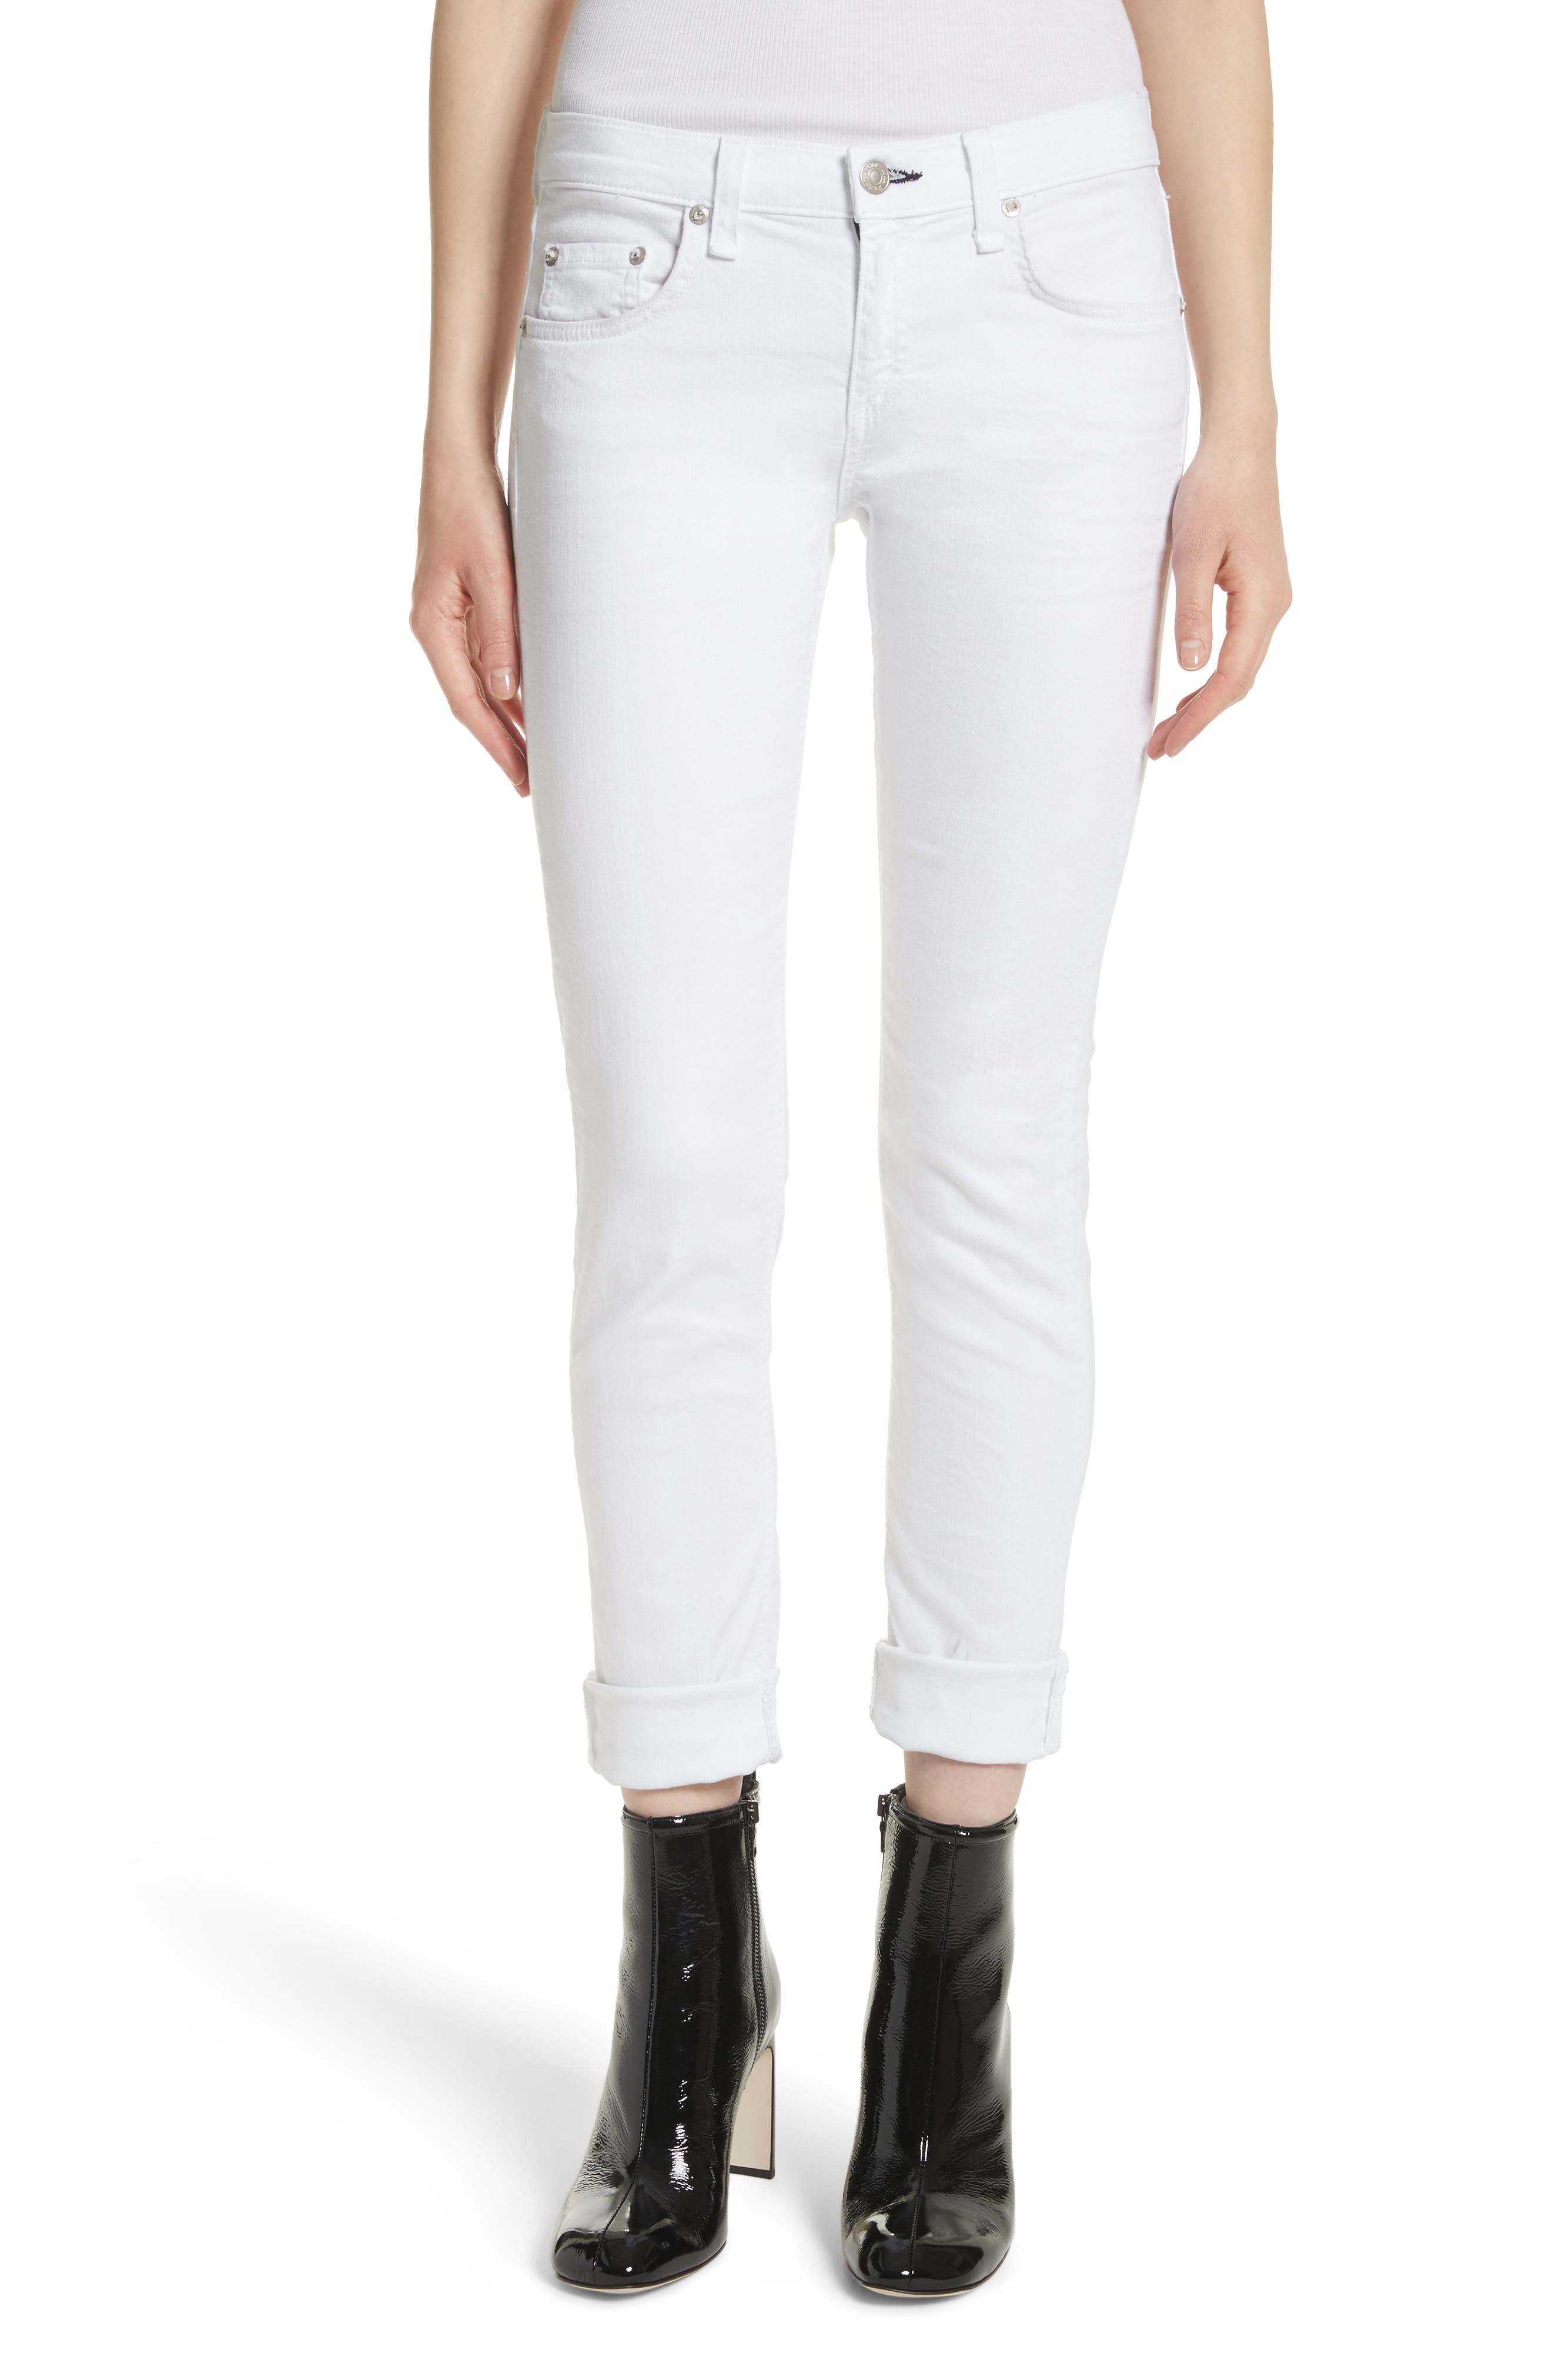 RAG & BONE, 'The Dre' Skinny Jeans, Main thumbnail 1, color, BRIGHT WHITE